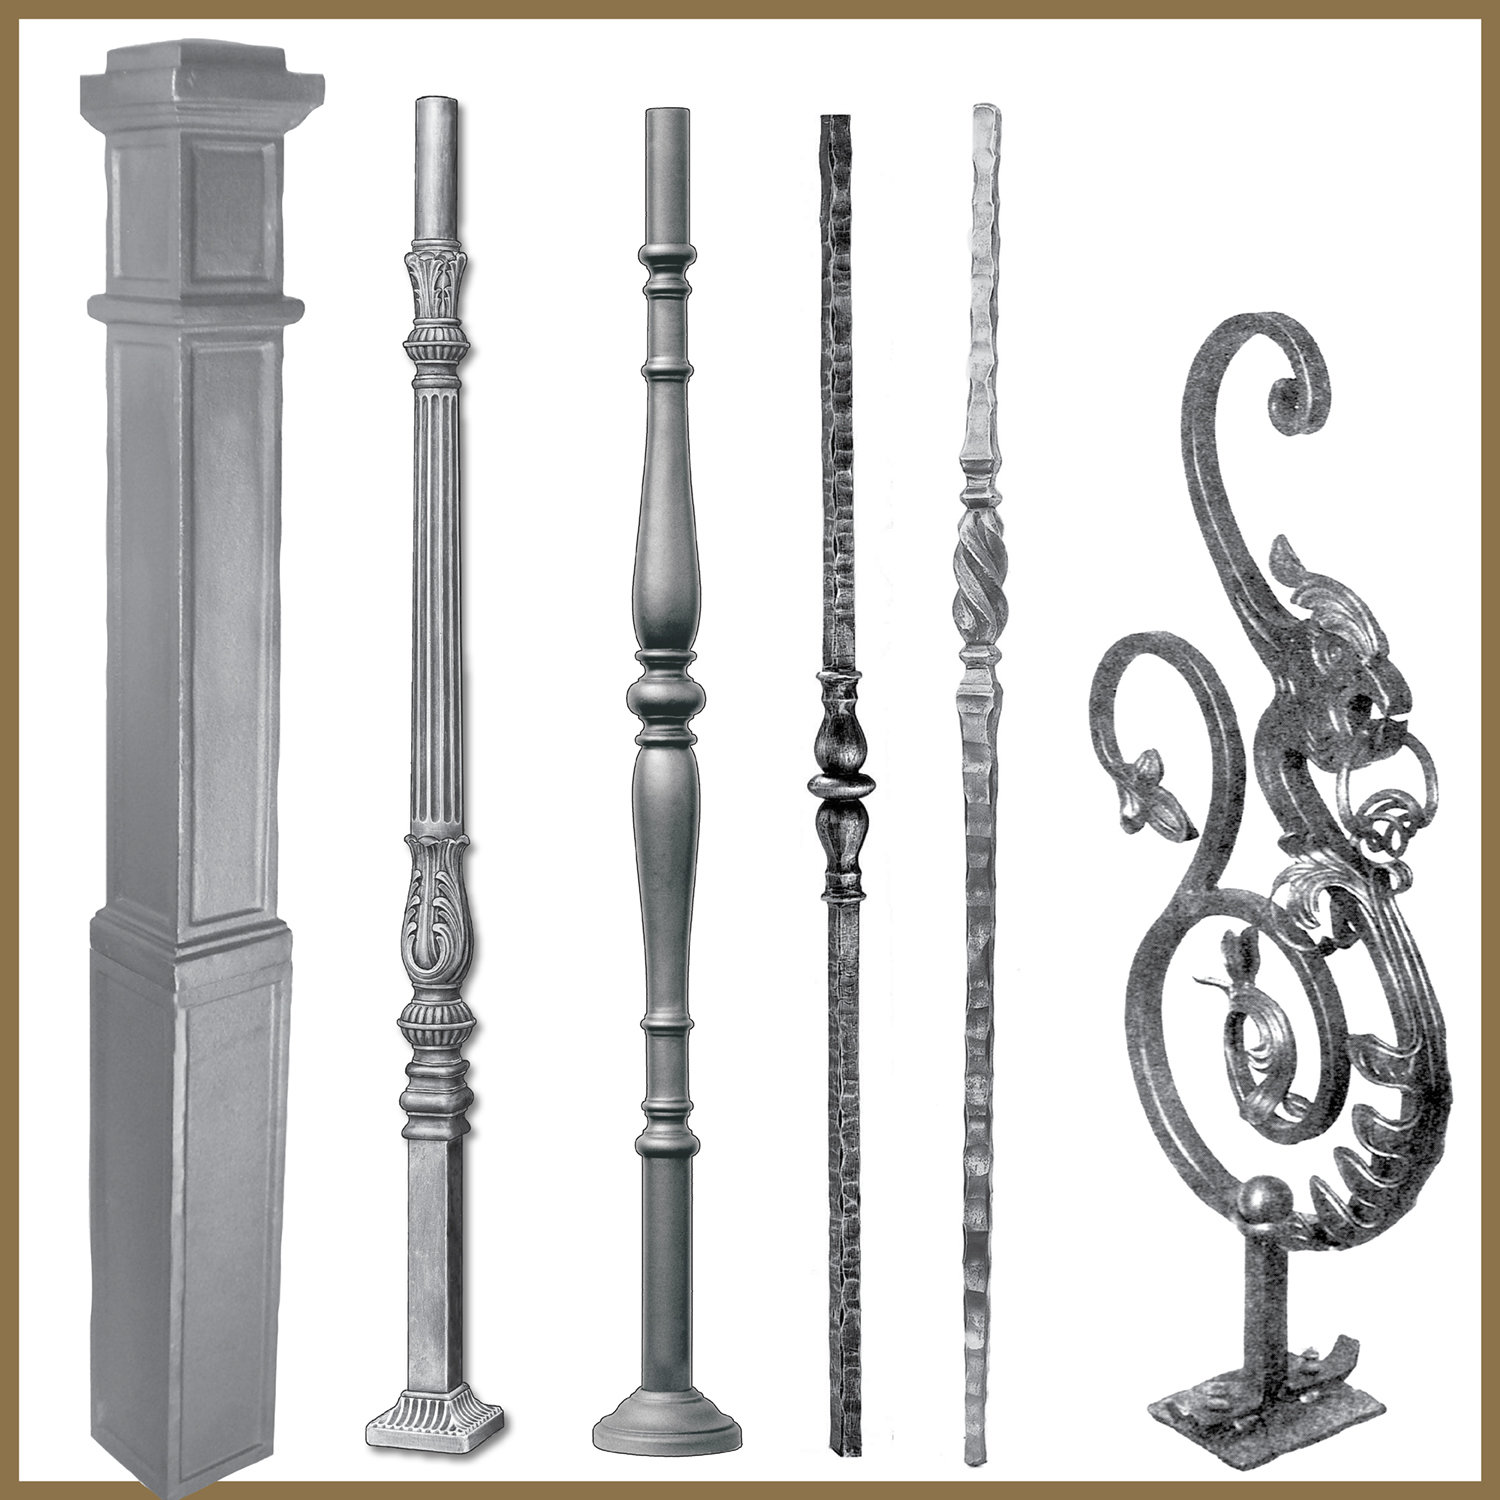 Architectural Iron Designs, Inc. image | Architectural Iron Designs, Inc.